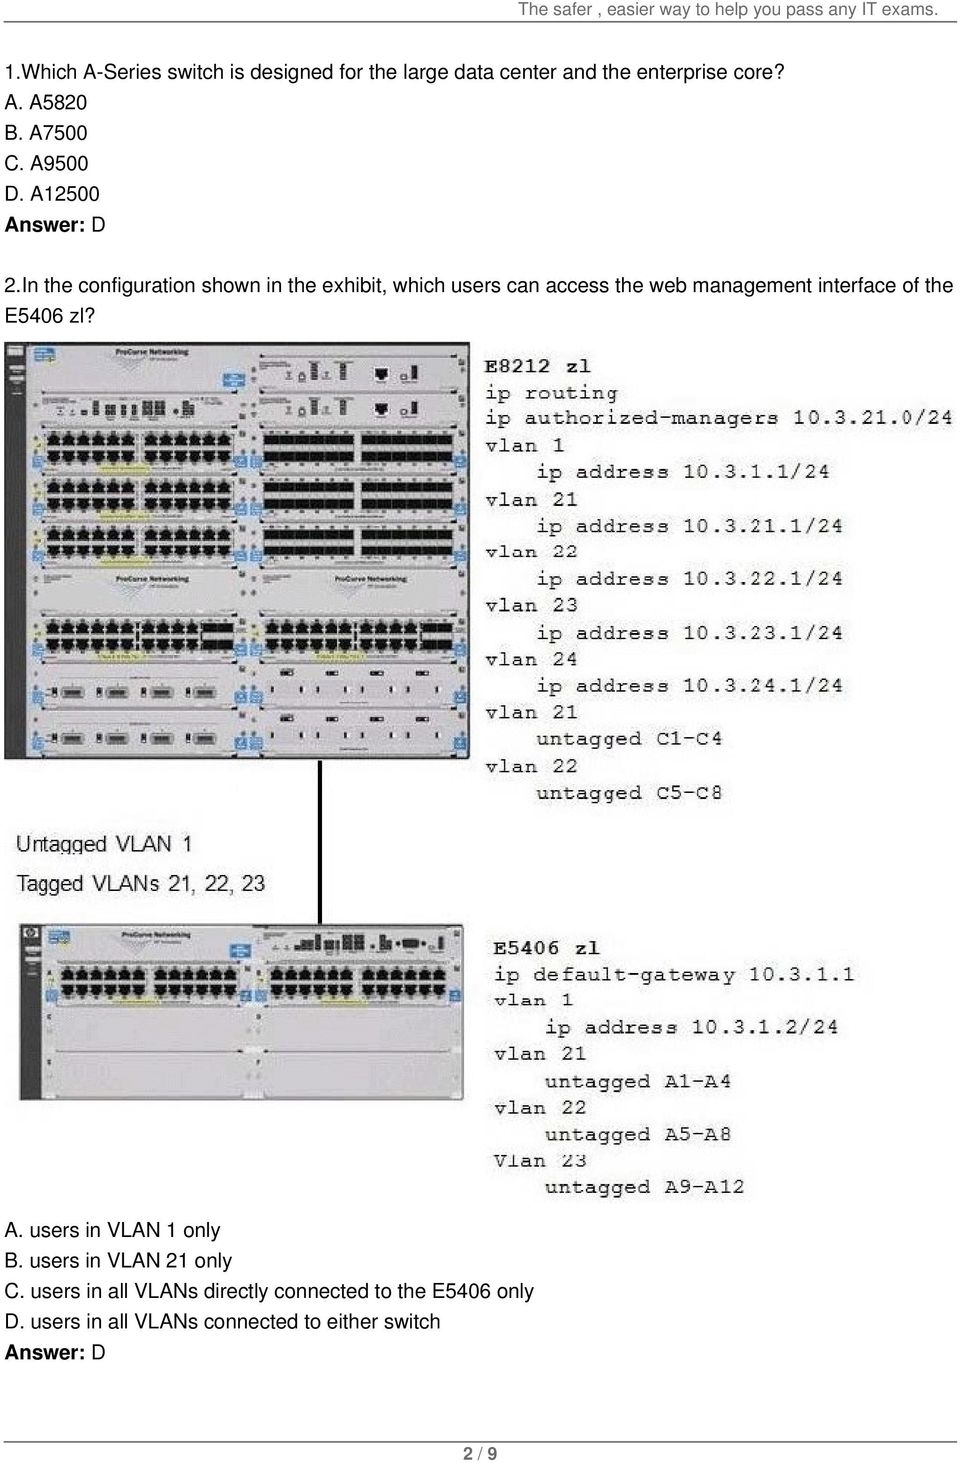 In the configuration shown in the exhibit, which users can access the web management interface of